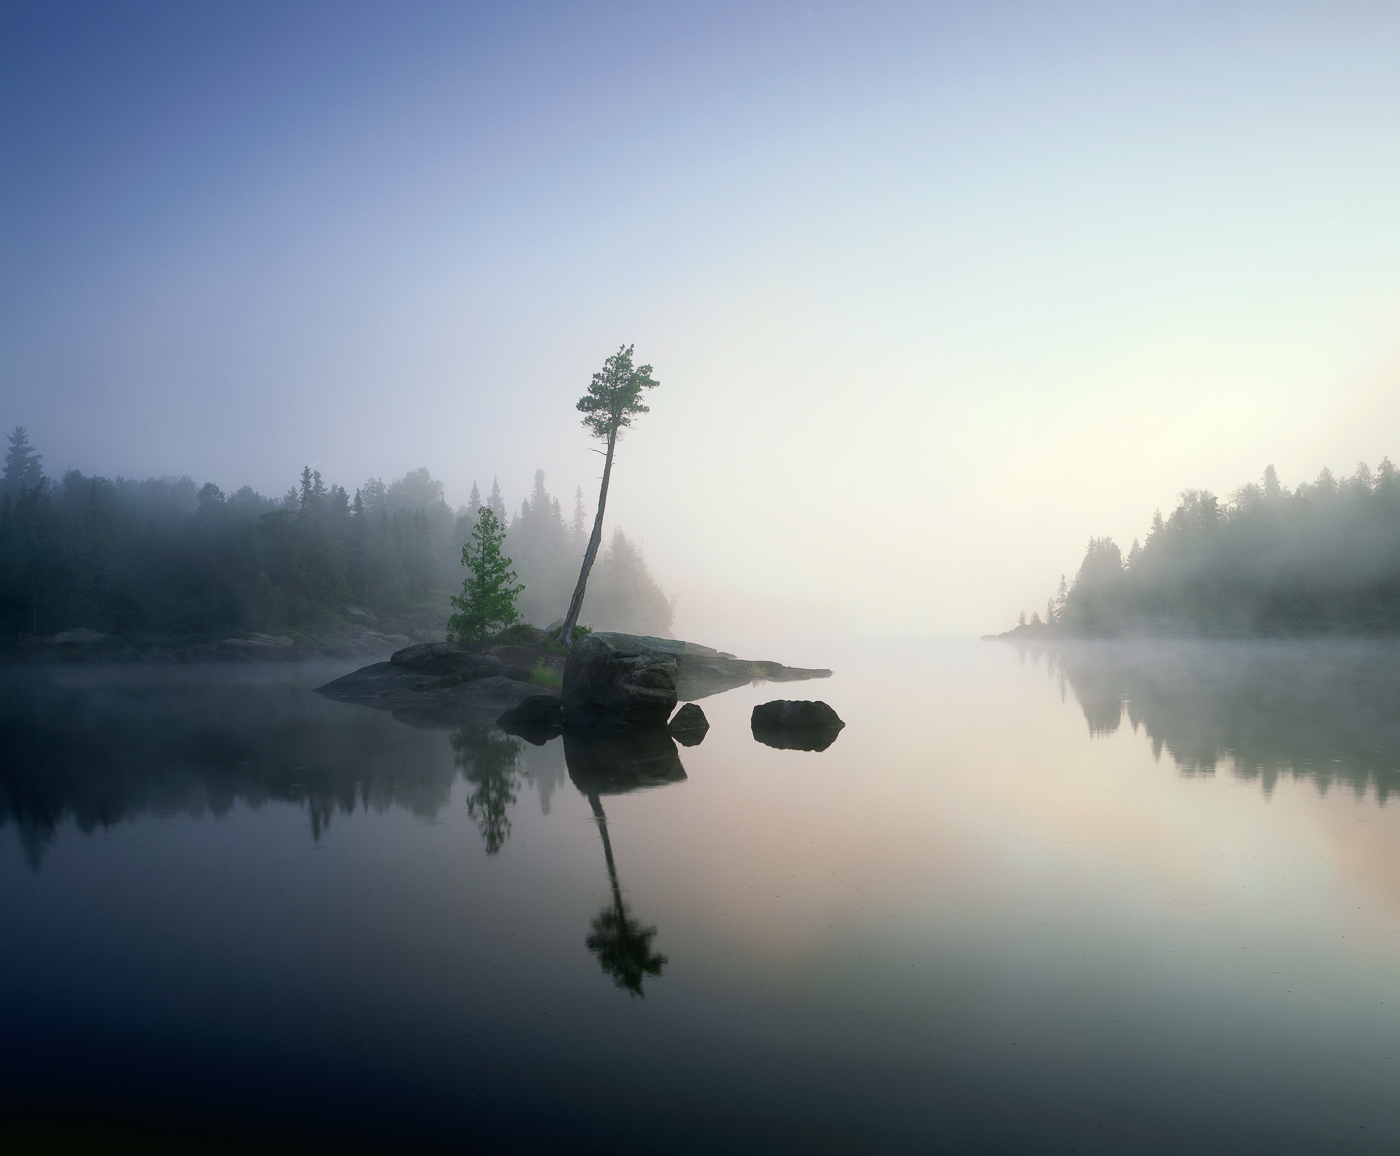 Calm water and fog on Lake Three, Boundary Waters Canoe Area Wilderness, Northern Minnesota